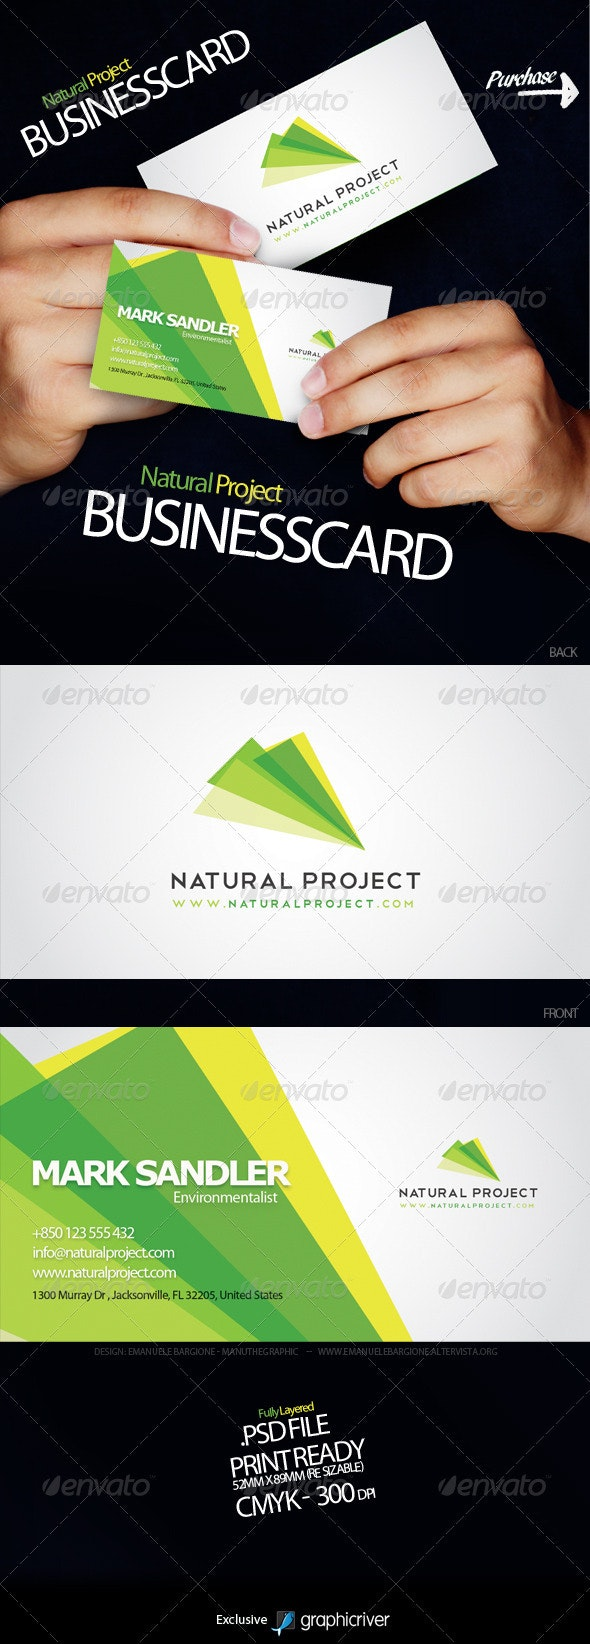 Natural Project Business Card - Corporate Business Cards